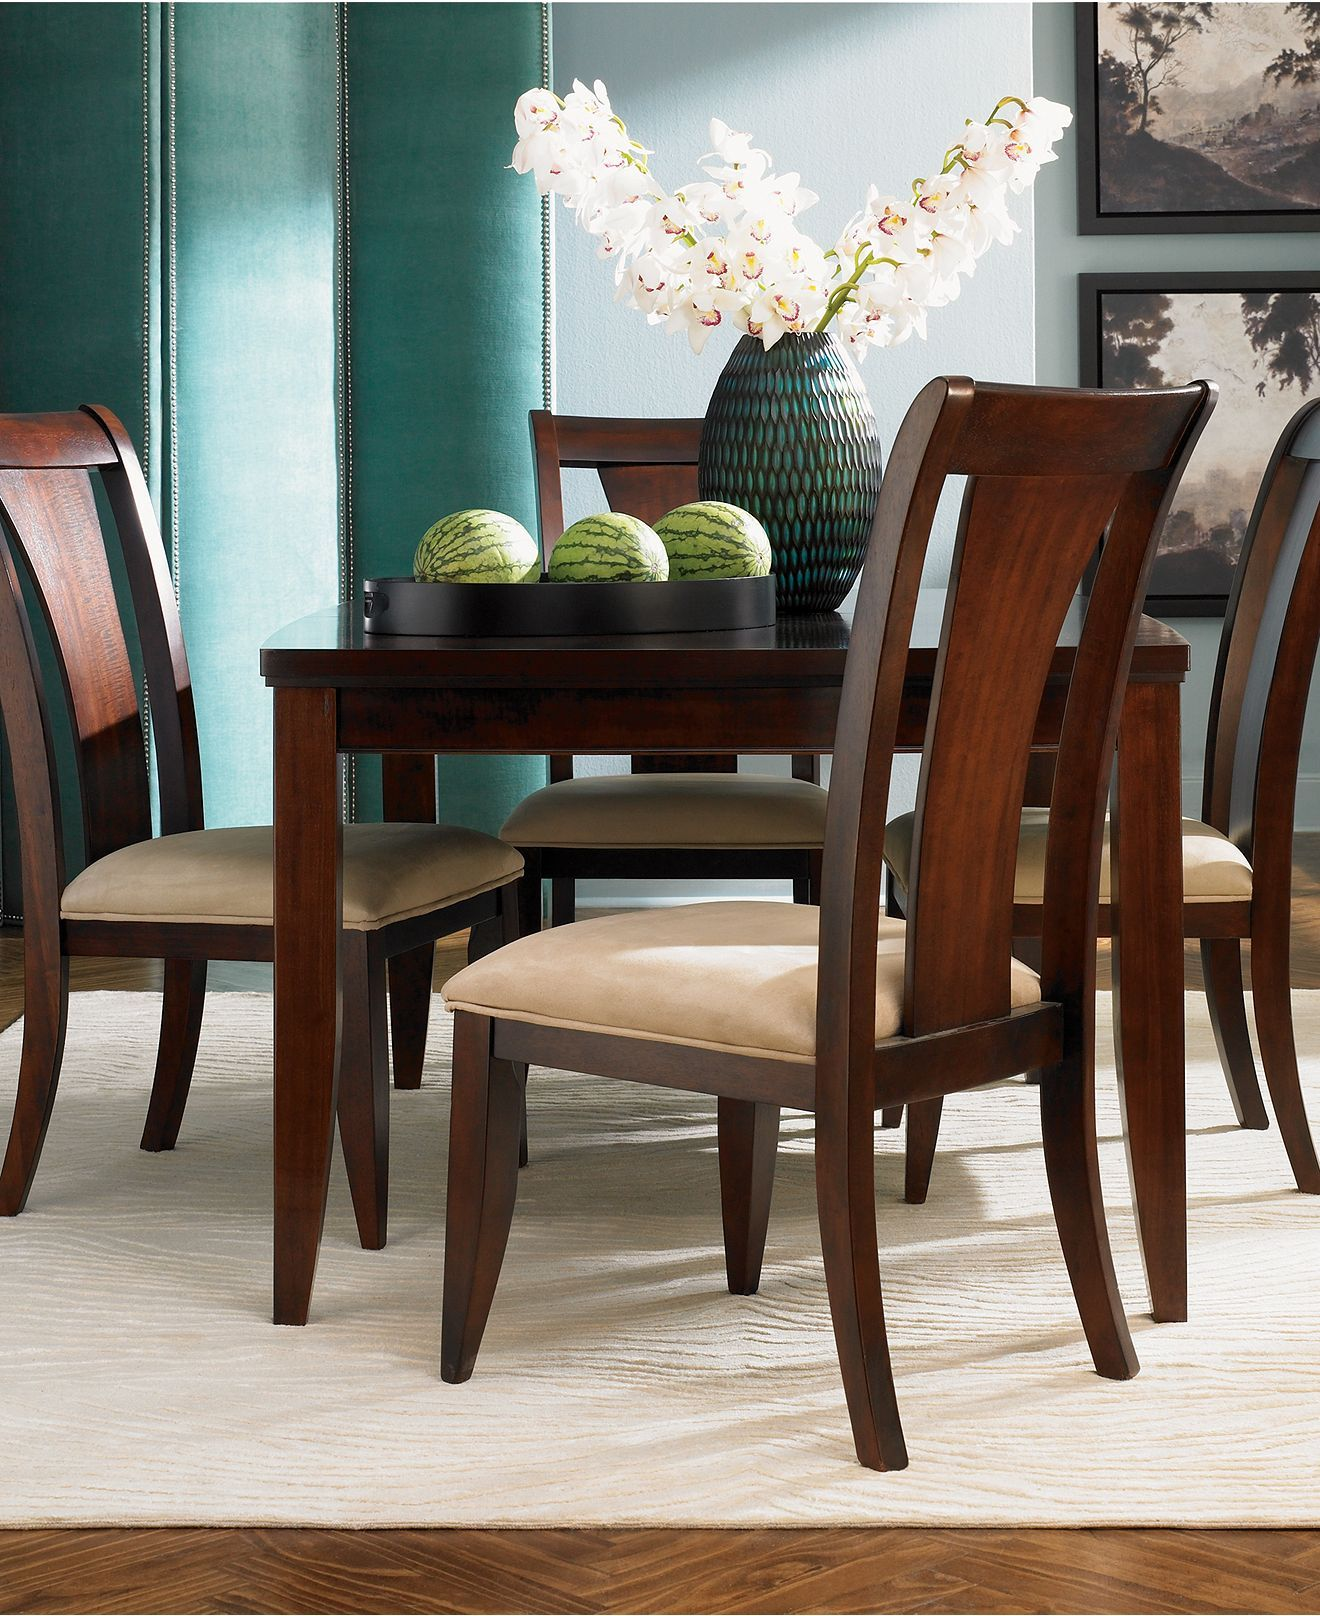 Genial Metropolitan Dining Room Sets   Furniture   Macyu0027s $1189 7 Piece Set. Table  40x66 (96 With Leaves)